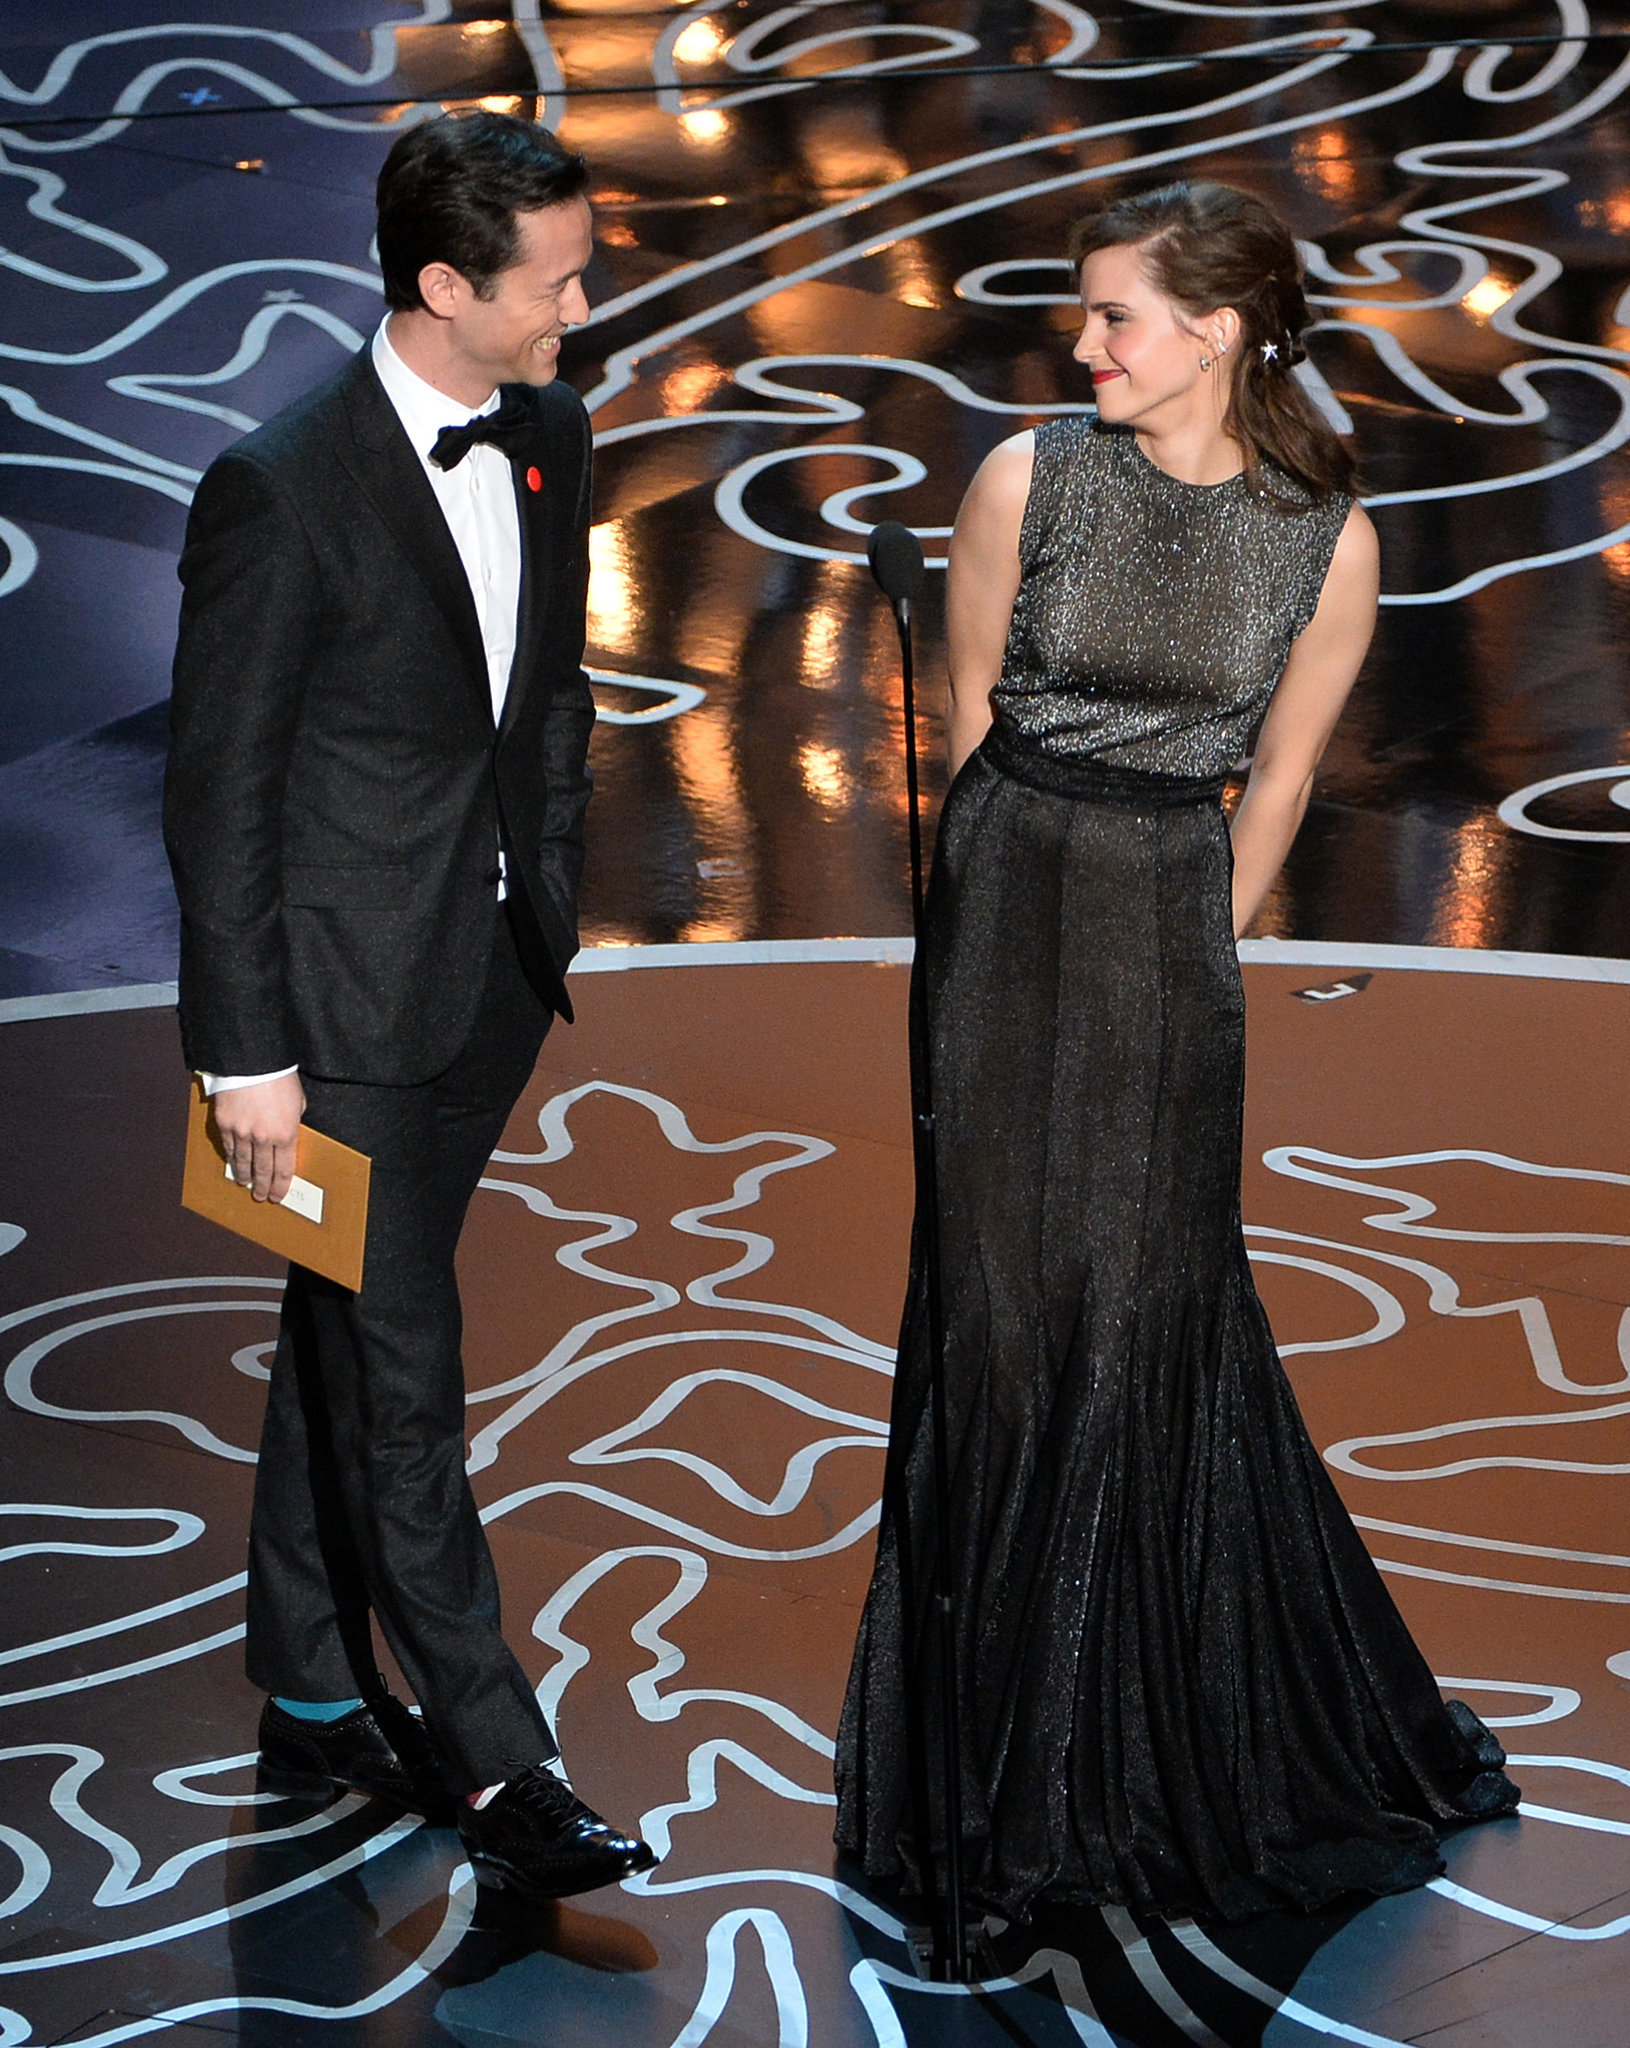 Joseph Gordon-Levitt and Emma Watson shared an adorable moment when they took the stage to present the award for